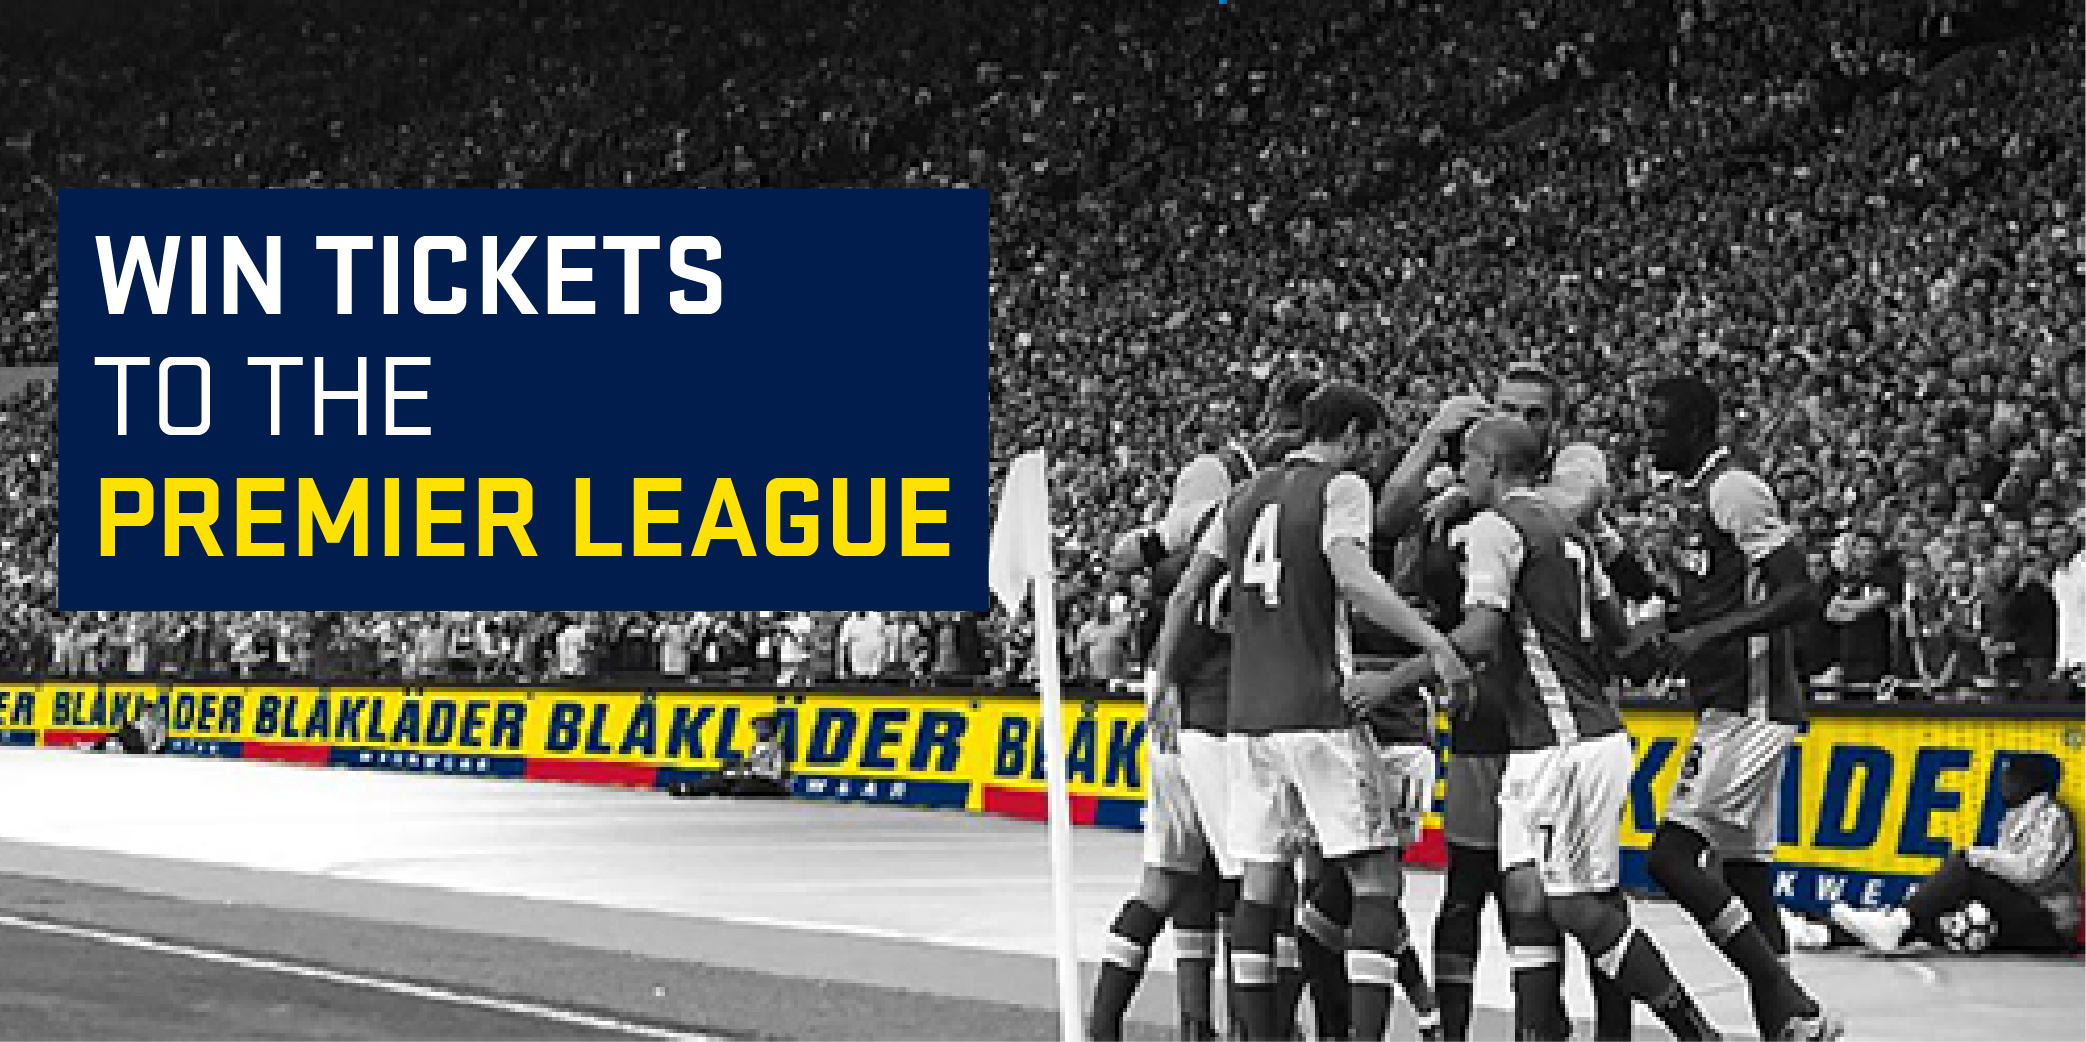 Enter for a chance to win a trip to London, England with tickets to a Premier League soccer game Giveaway Image